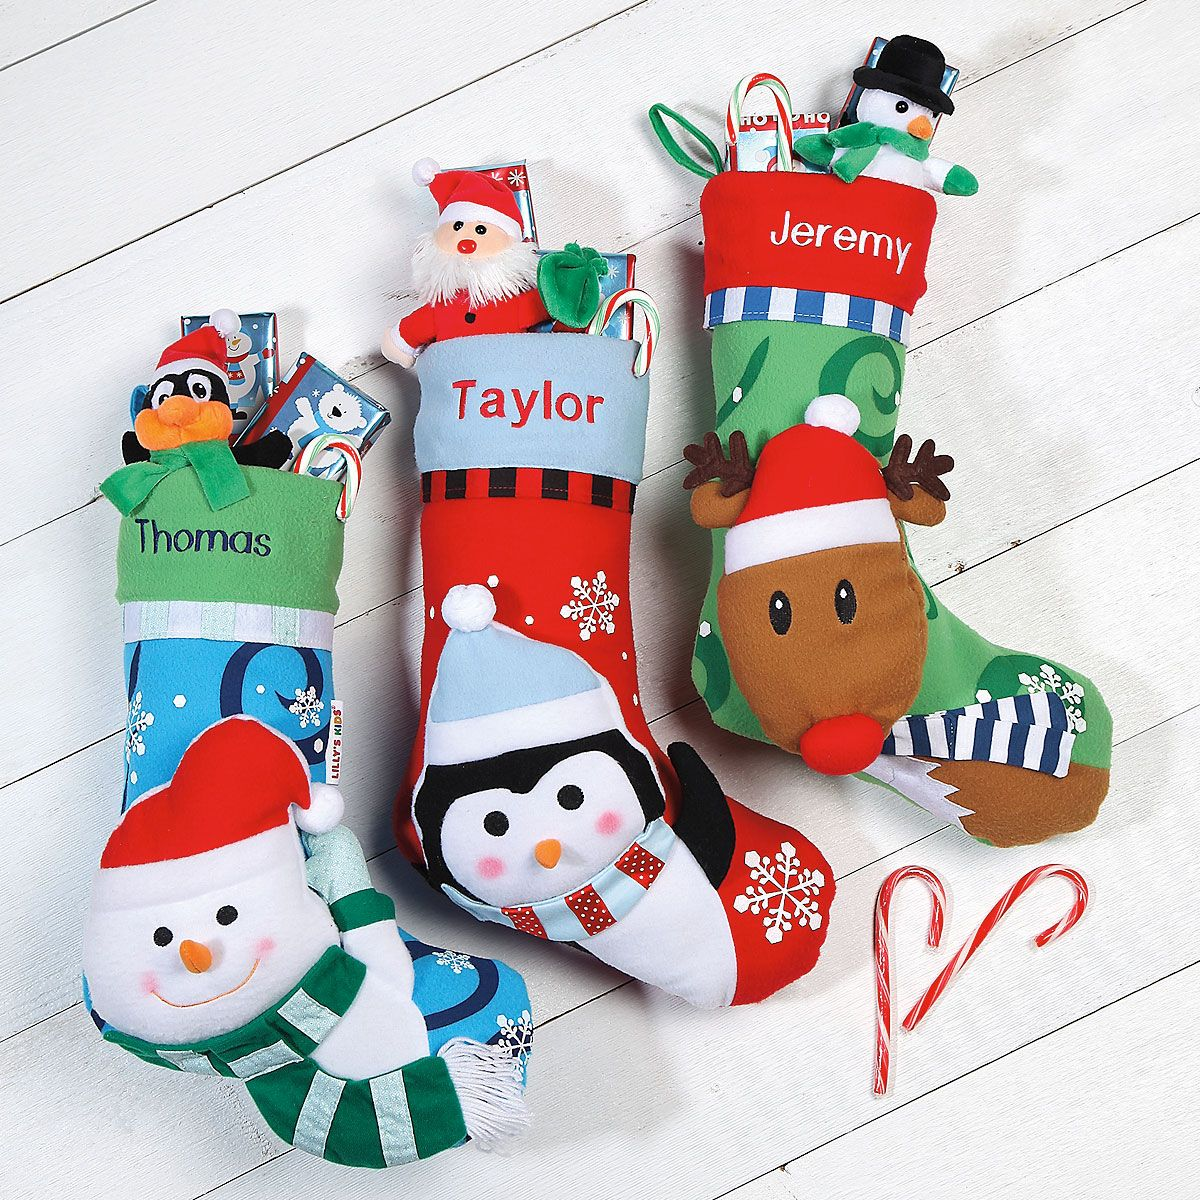 3-D Snowman Personalized Christmas Stocking